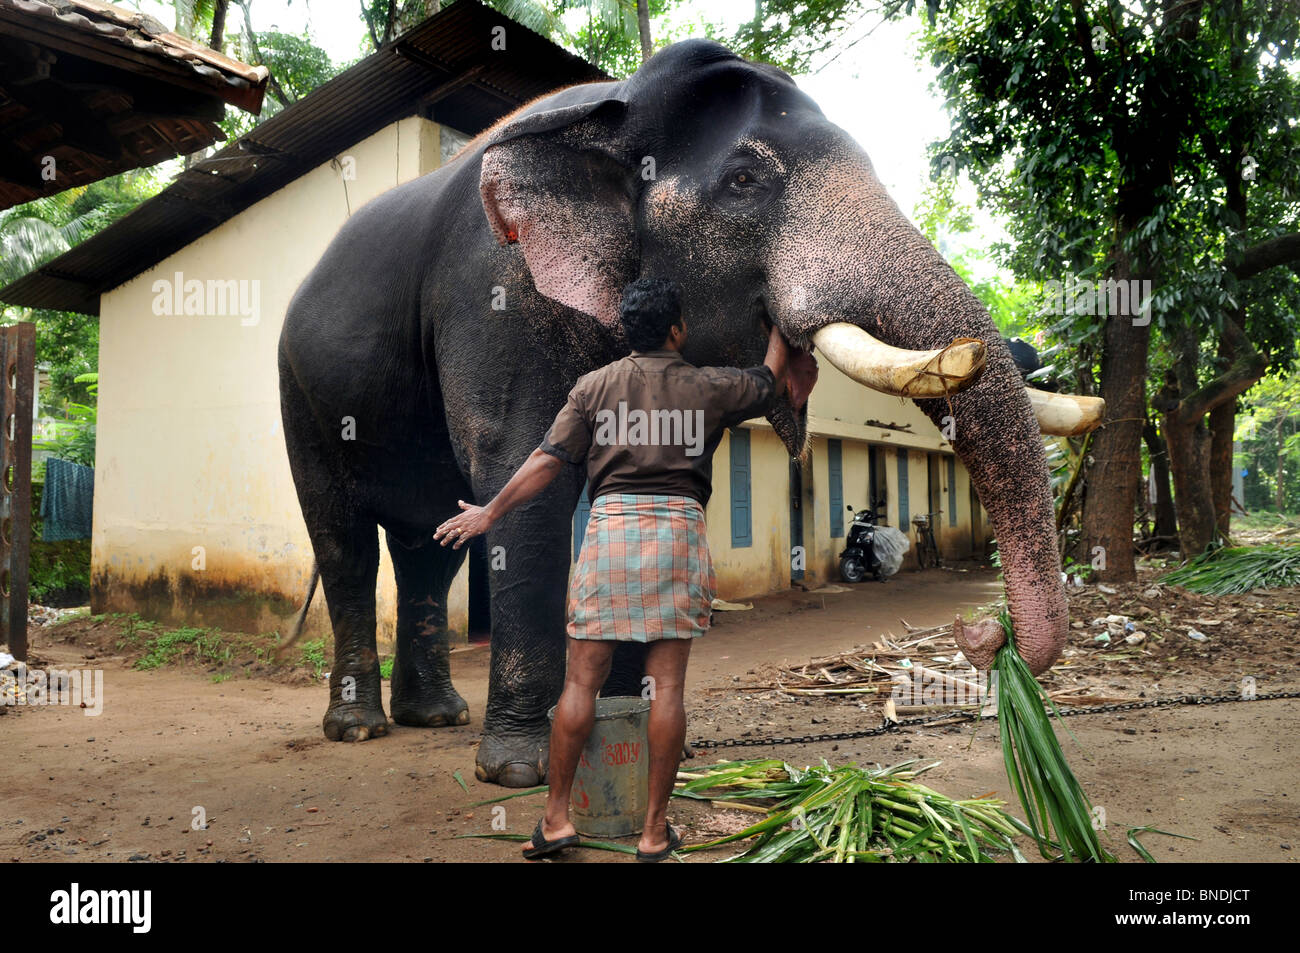 This Elephant Sanctuary Is In Punnathur Kotta About 3 kms North Of Guruvayur Temple - Stock Image